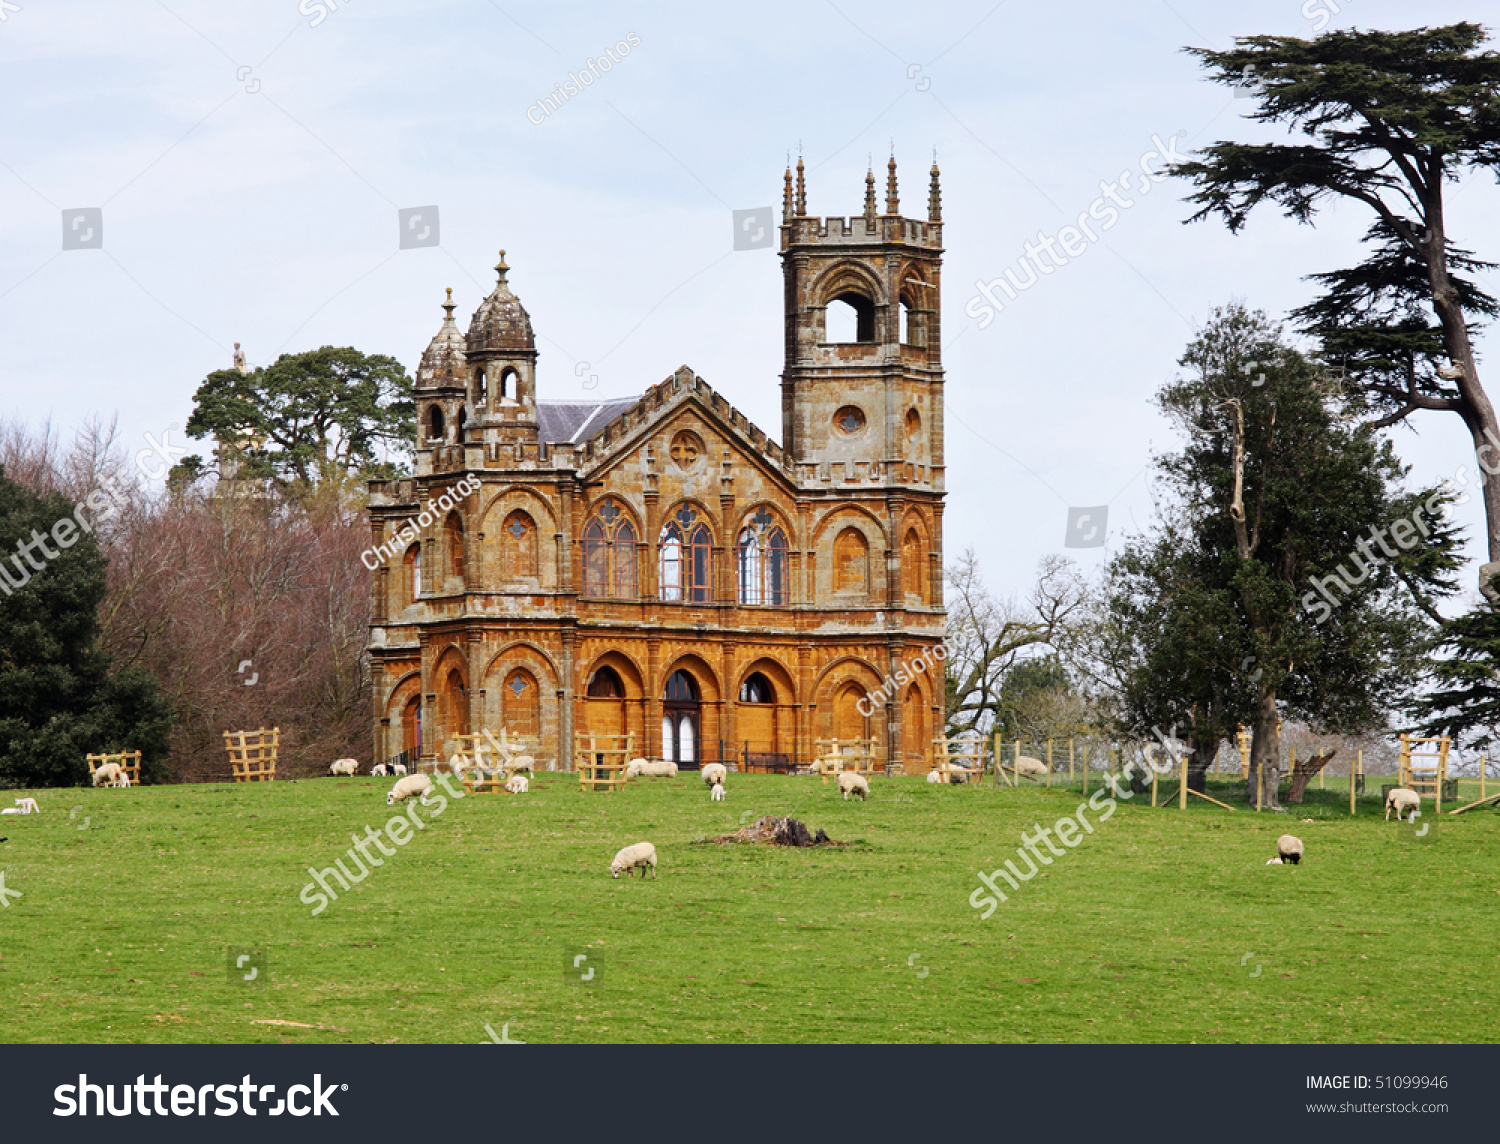 English landscape garden gothic style temple stock photo 100 legal an english landscape garden with gothic style temple on a hill and grazing sheep workwithnaturefo